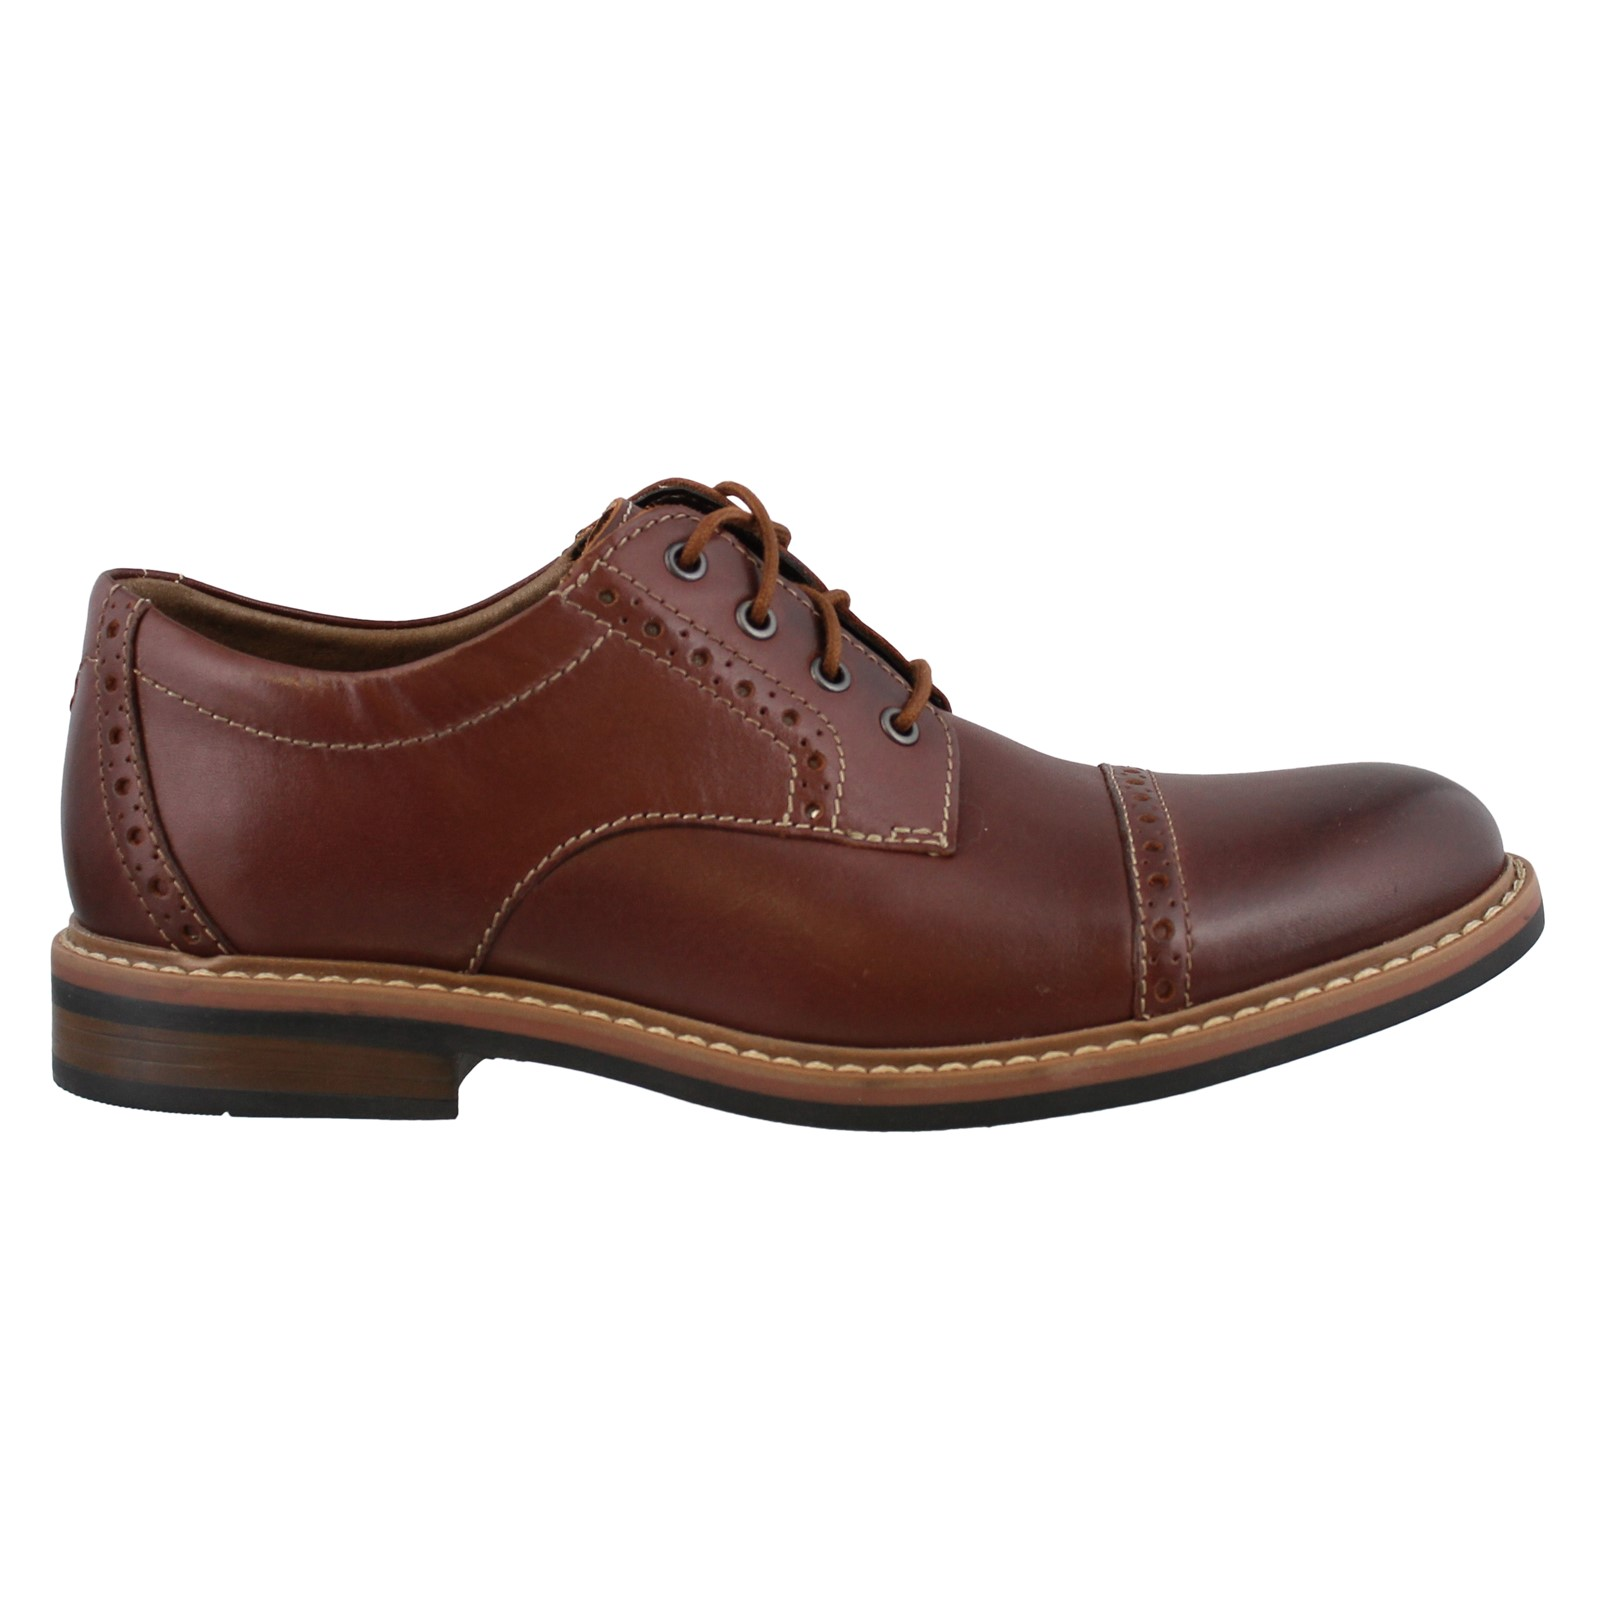 Men's Bostonian, Melshire Cap Lace up Oxfords